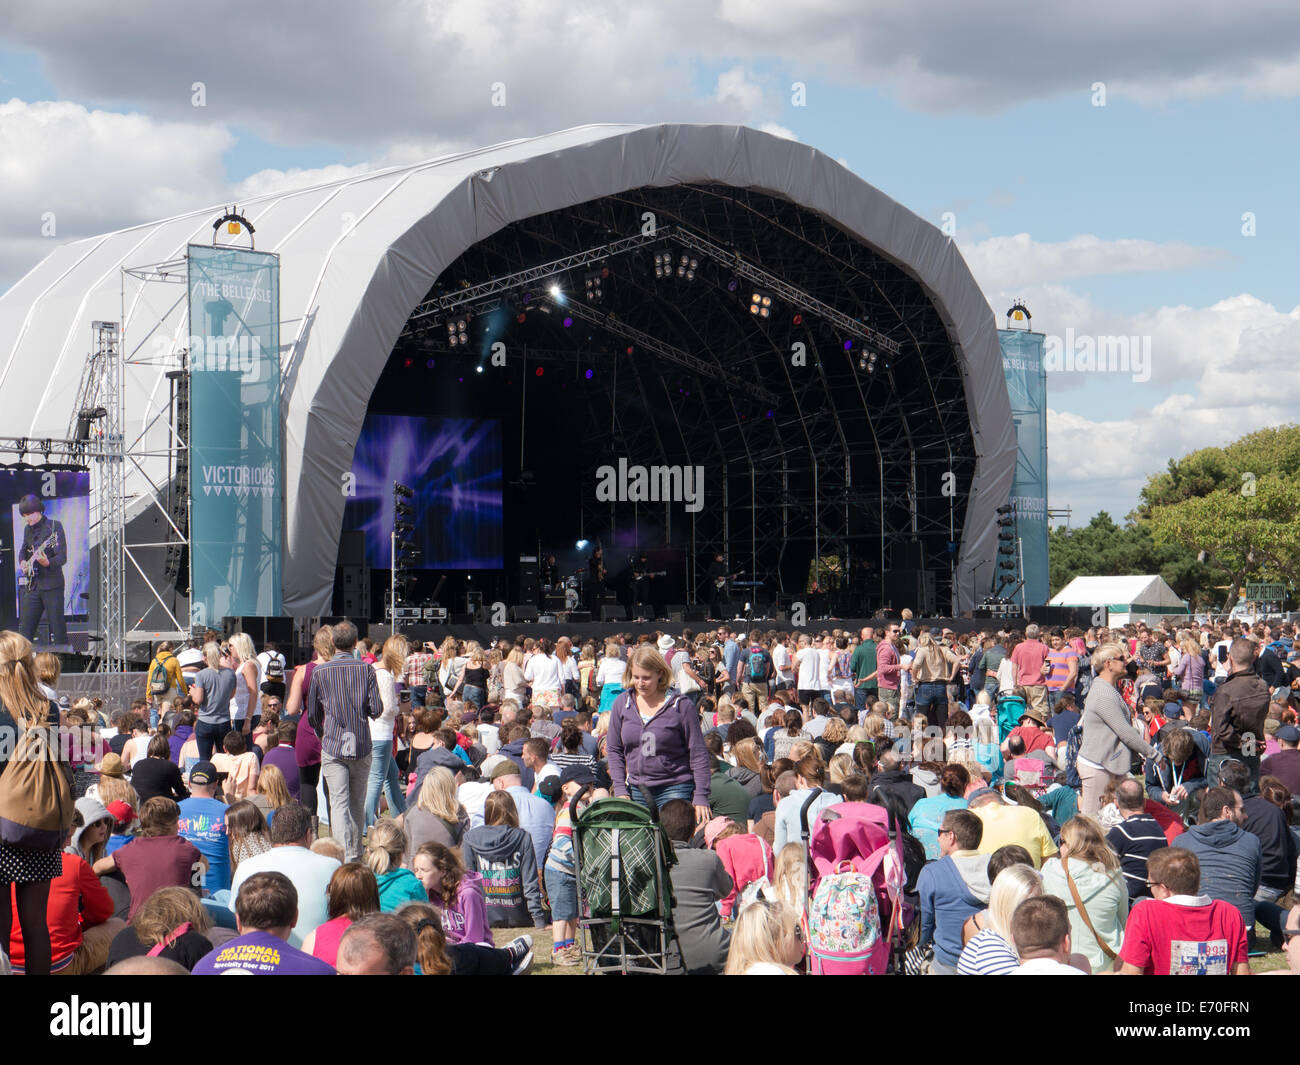 The main stage at the Victorious festival in Portsmouth, Hampshire, england Stock Photo